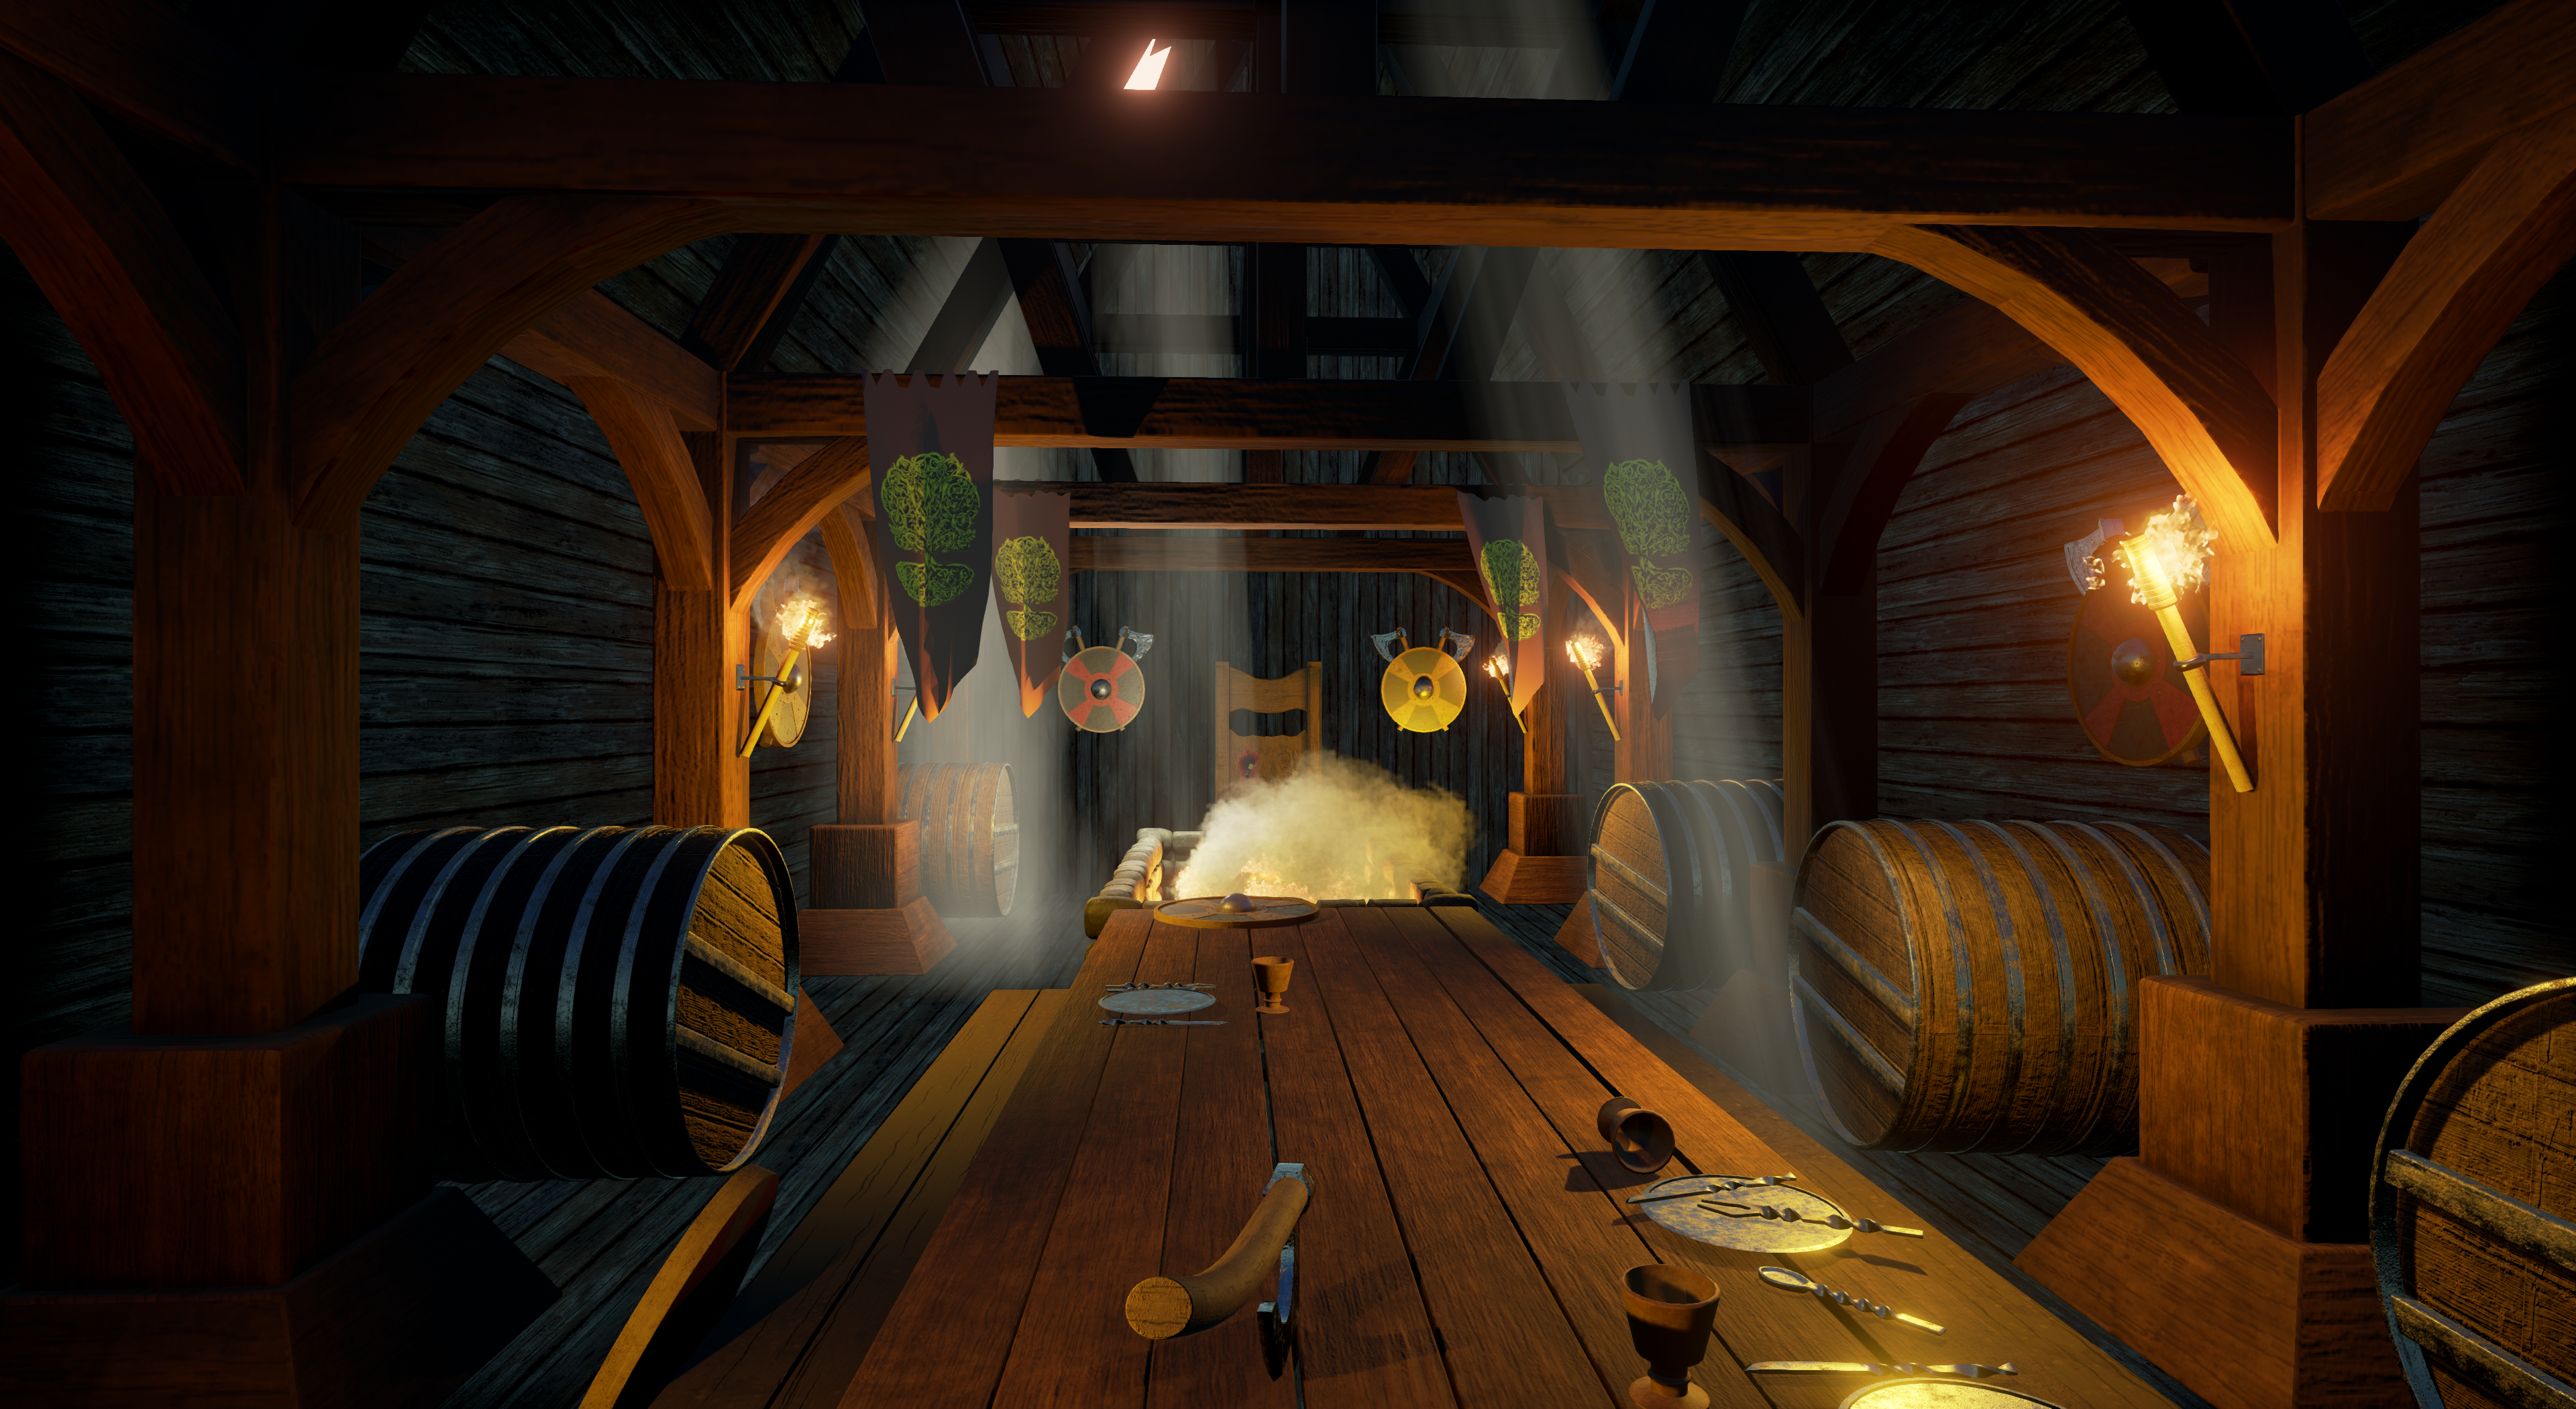 Viking mead hall